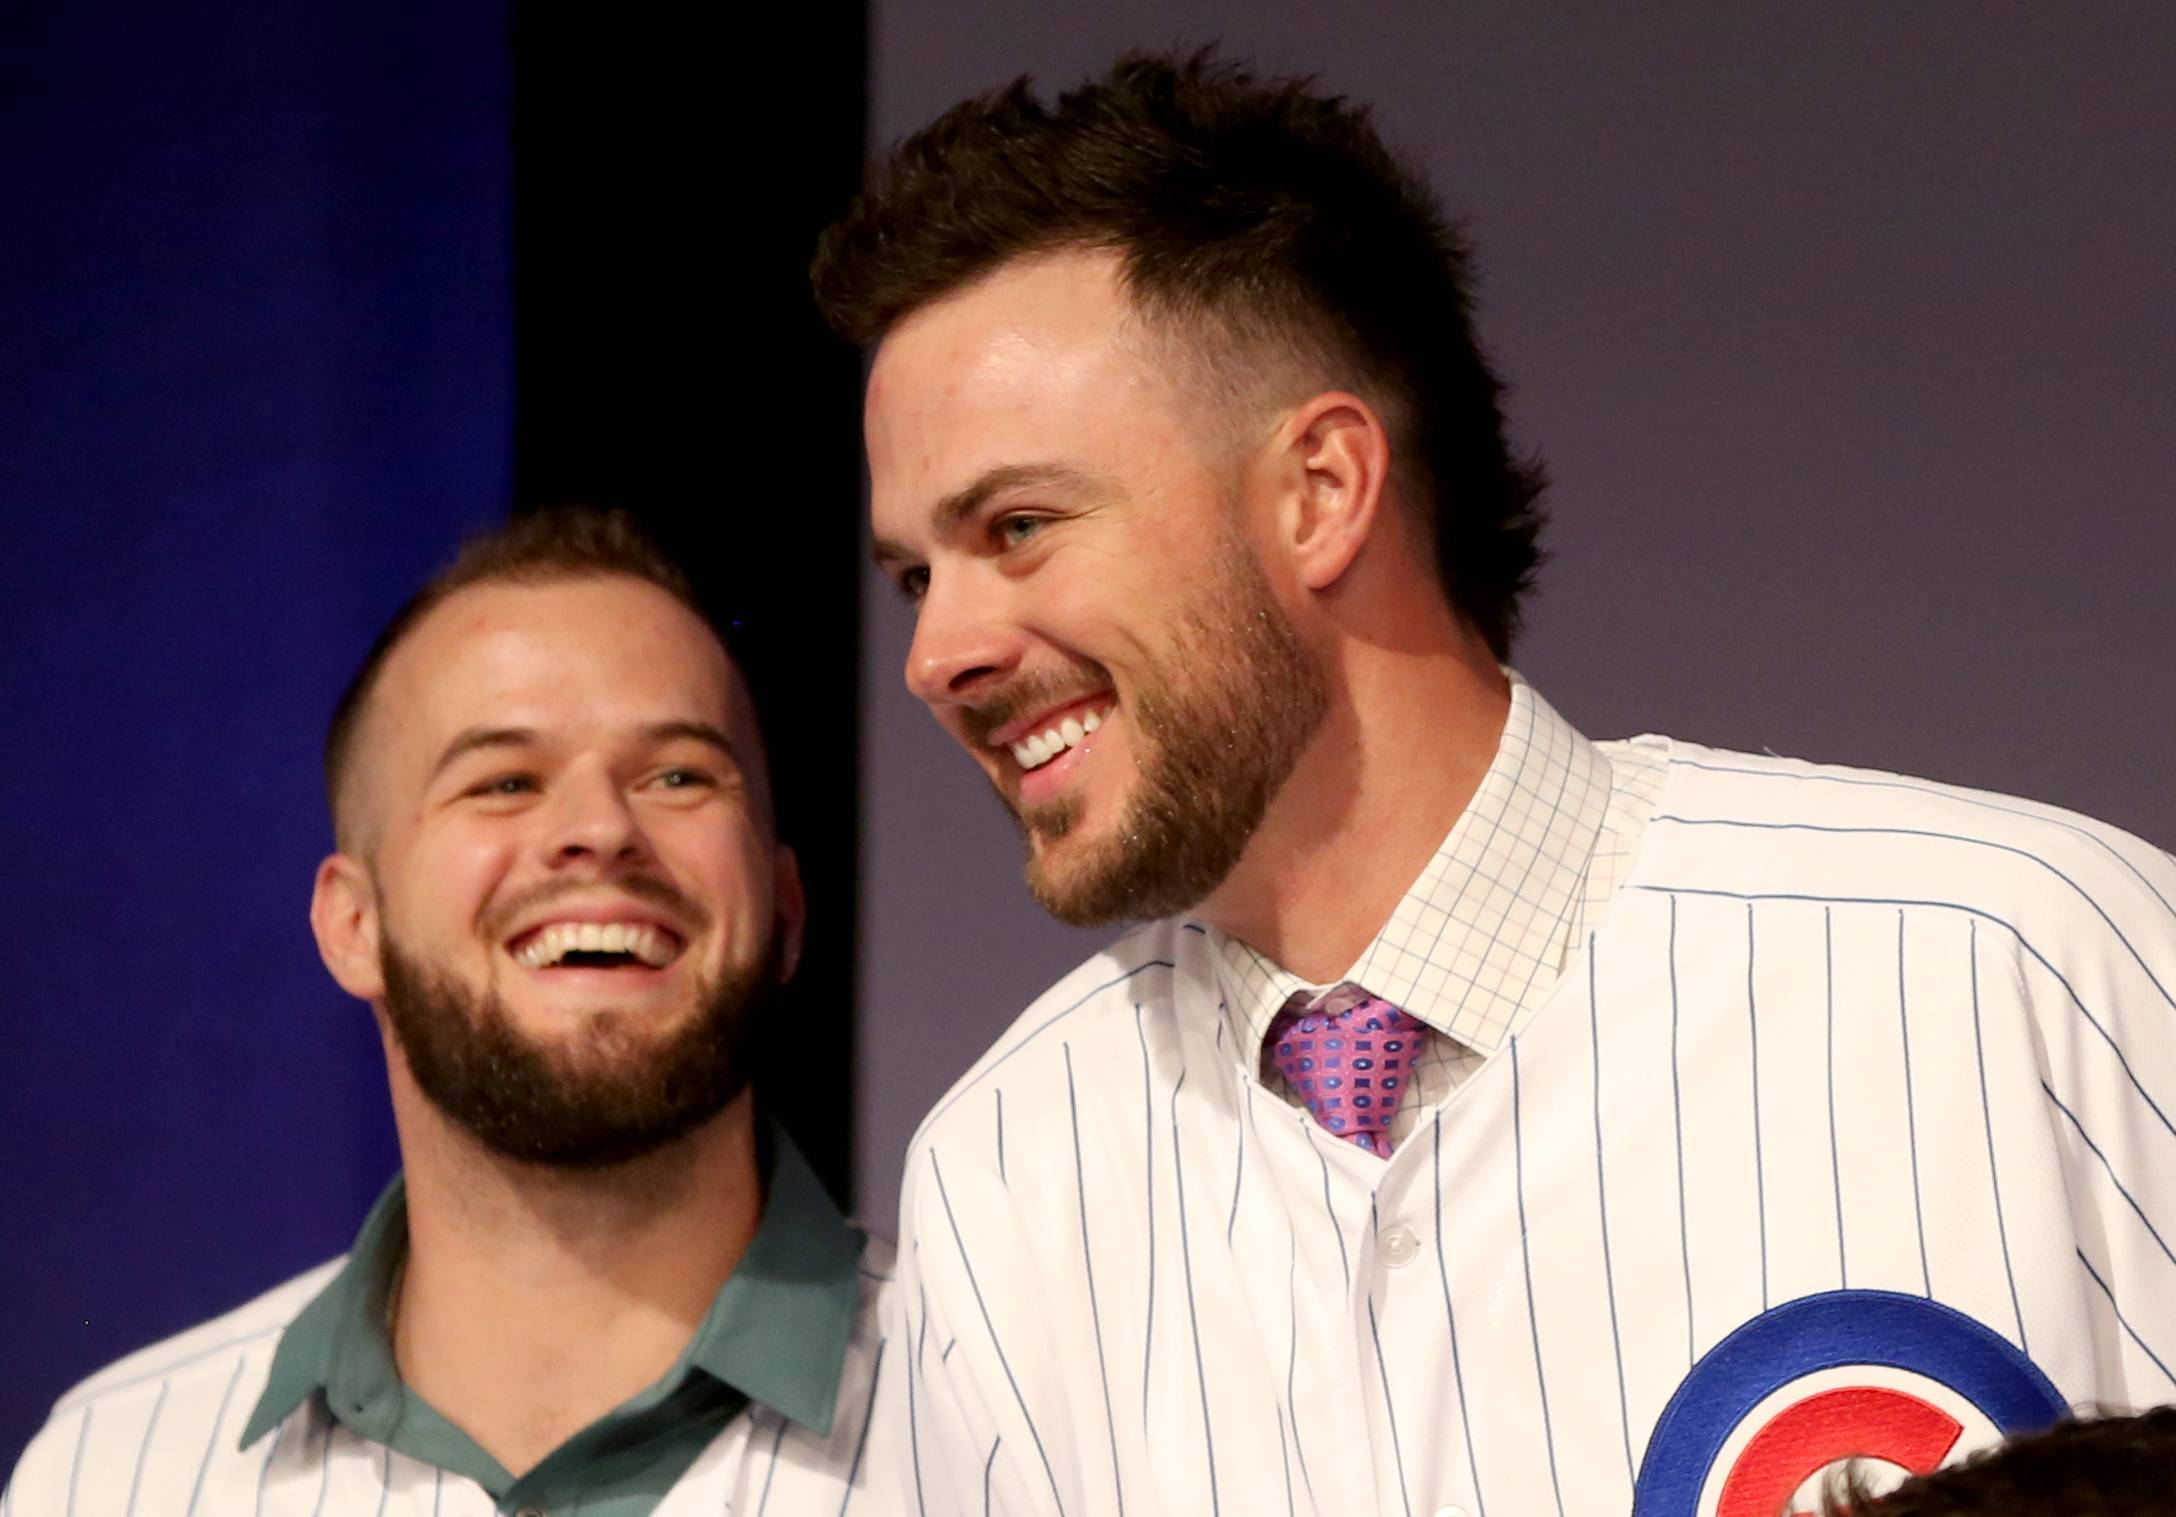 David Bote, left, shares a laugh with Kris Bryant during opening night Friday of the 2019 Chicago Cubs Convention at the Sheraton Grand in Chicago.